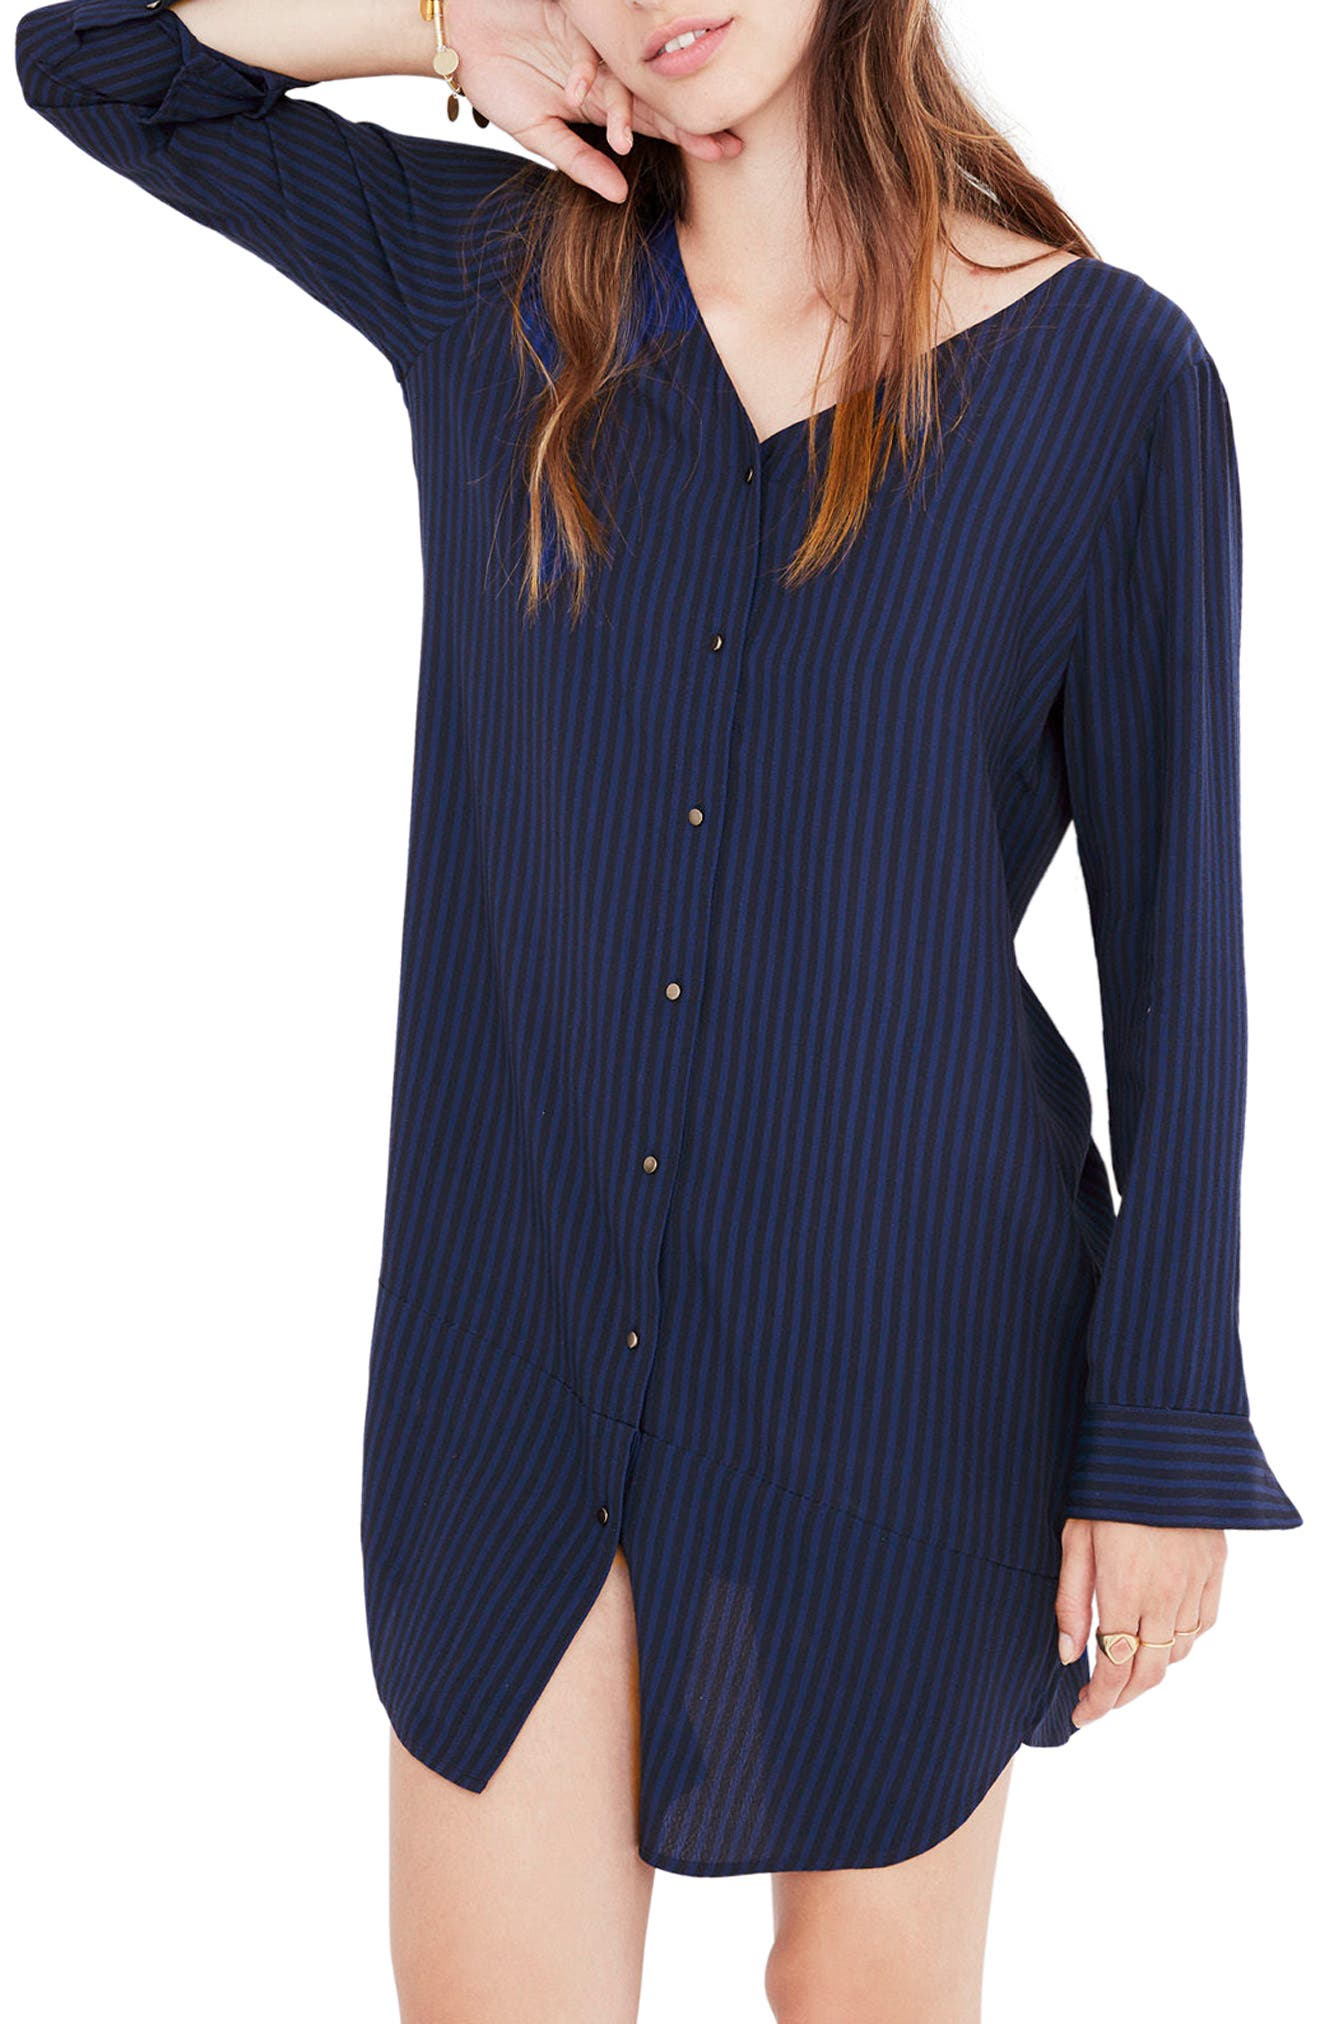 Alternate Image 1 Selected - Madewell Autumn Stripe Shift Dress